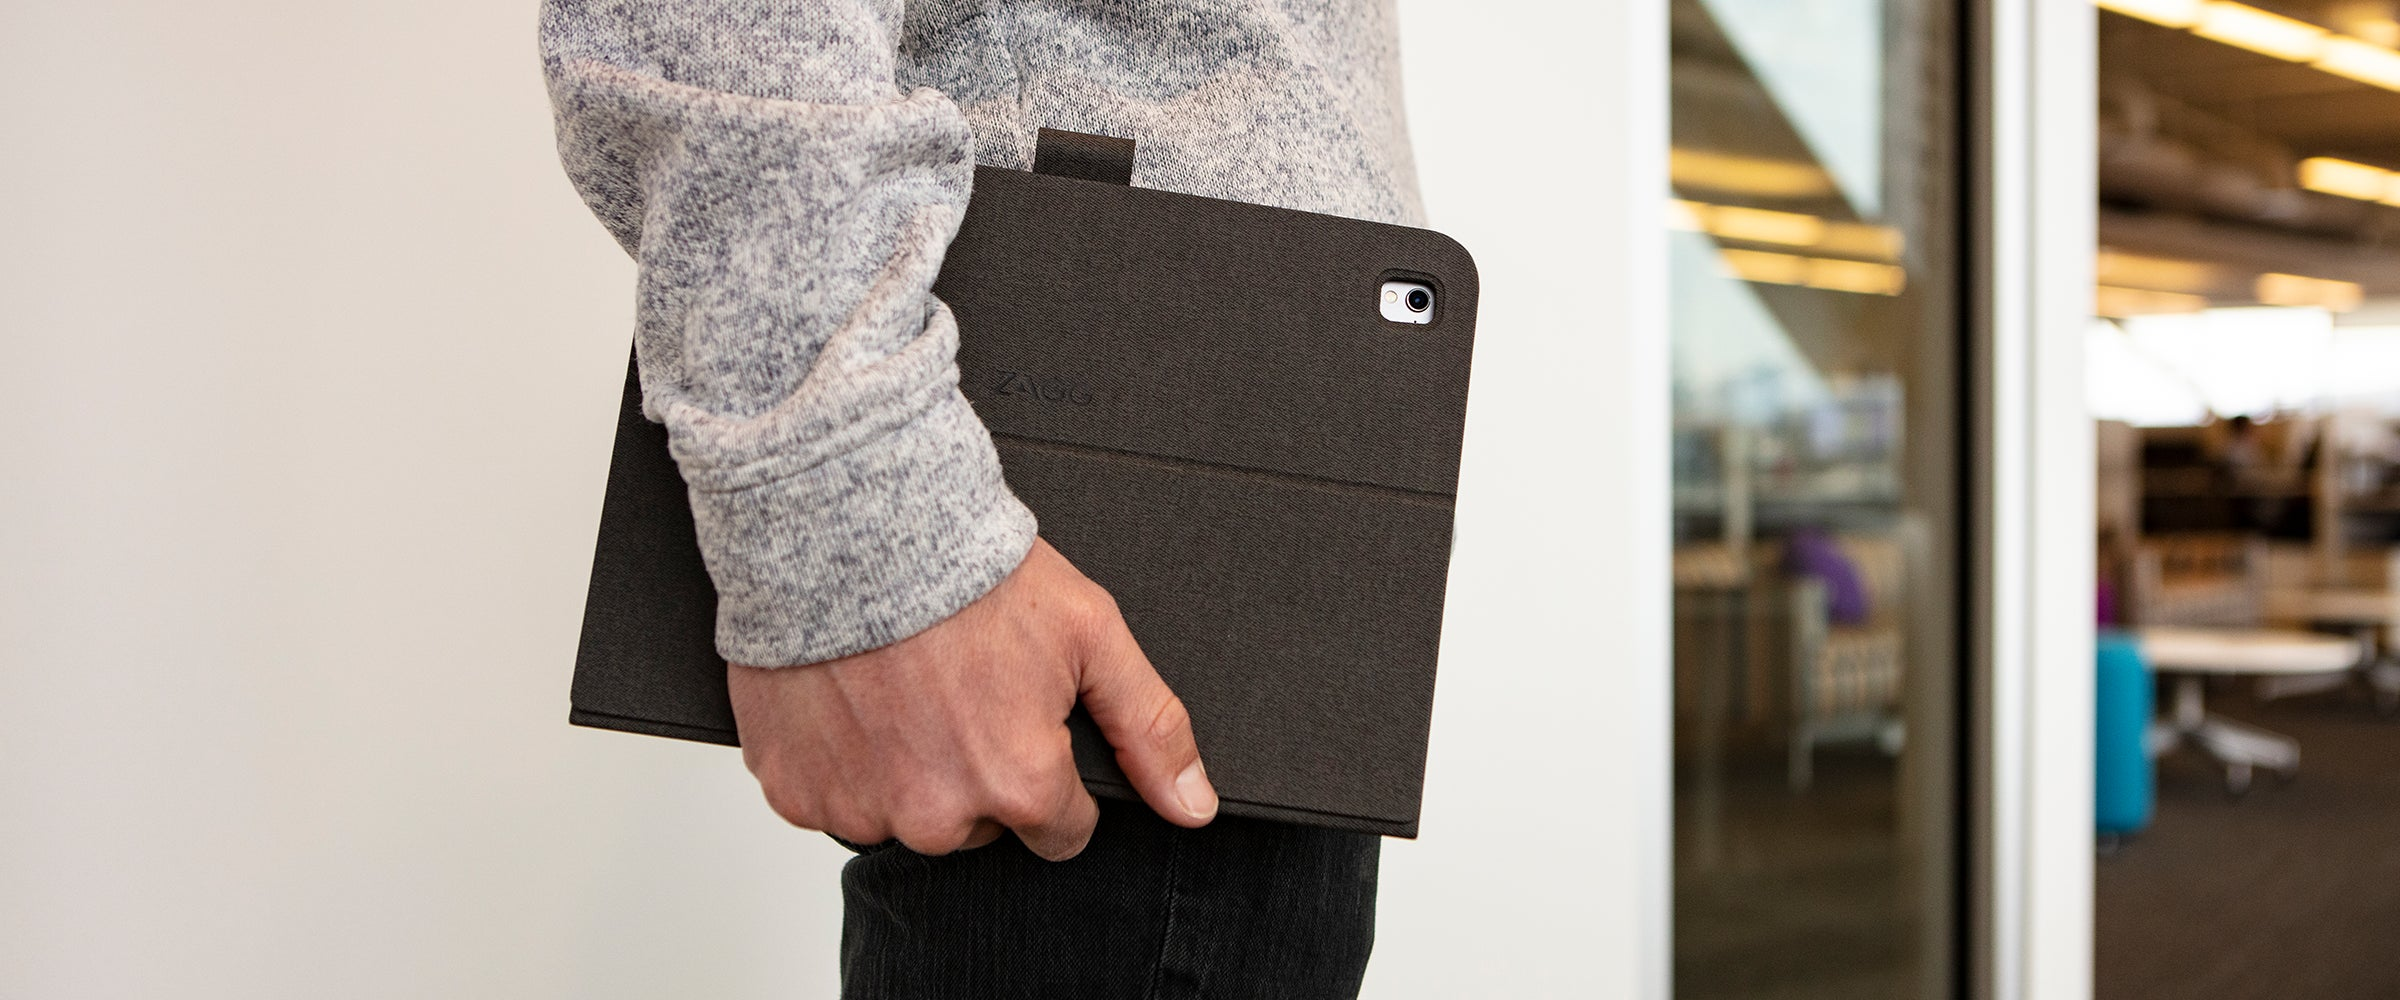 Man holding an iPad with a Messenger Folio case on it